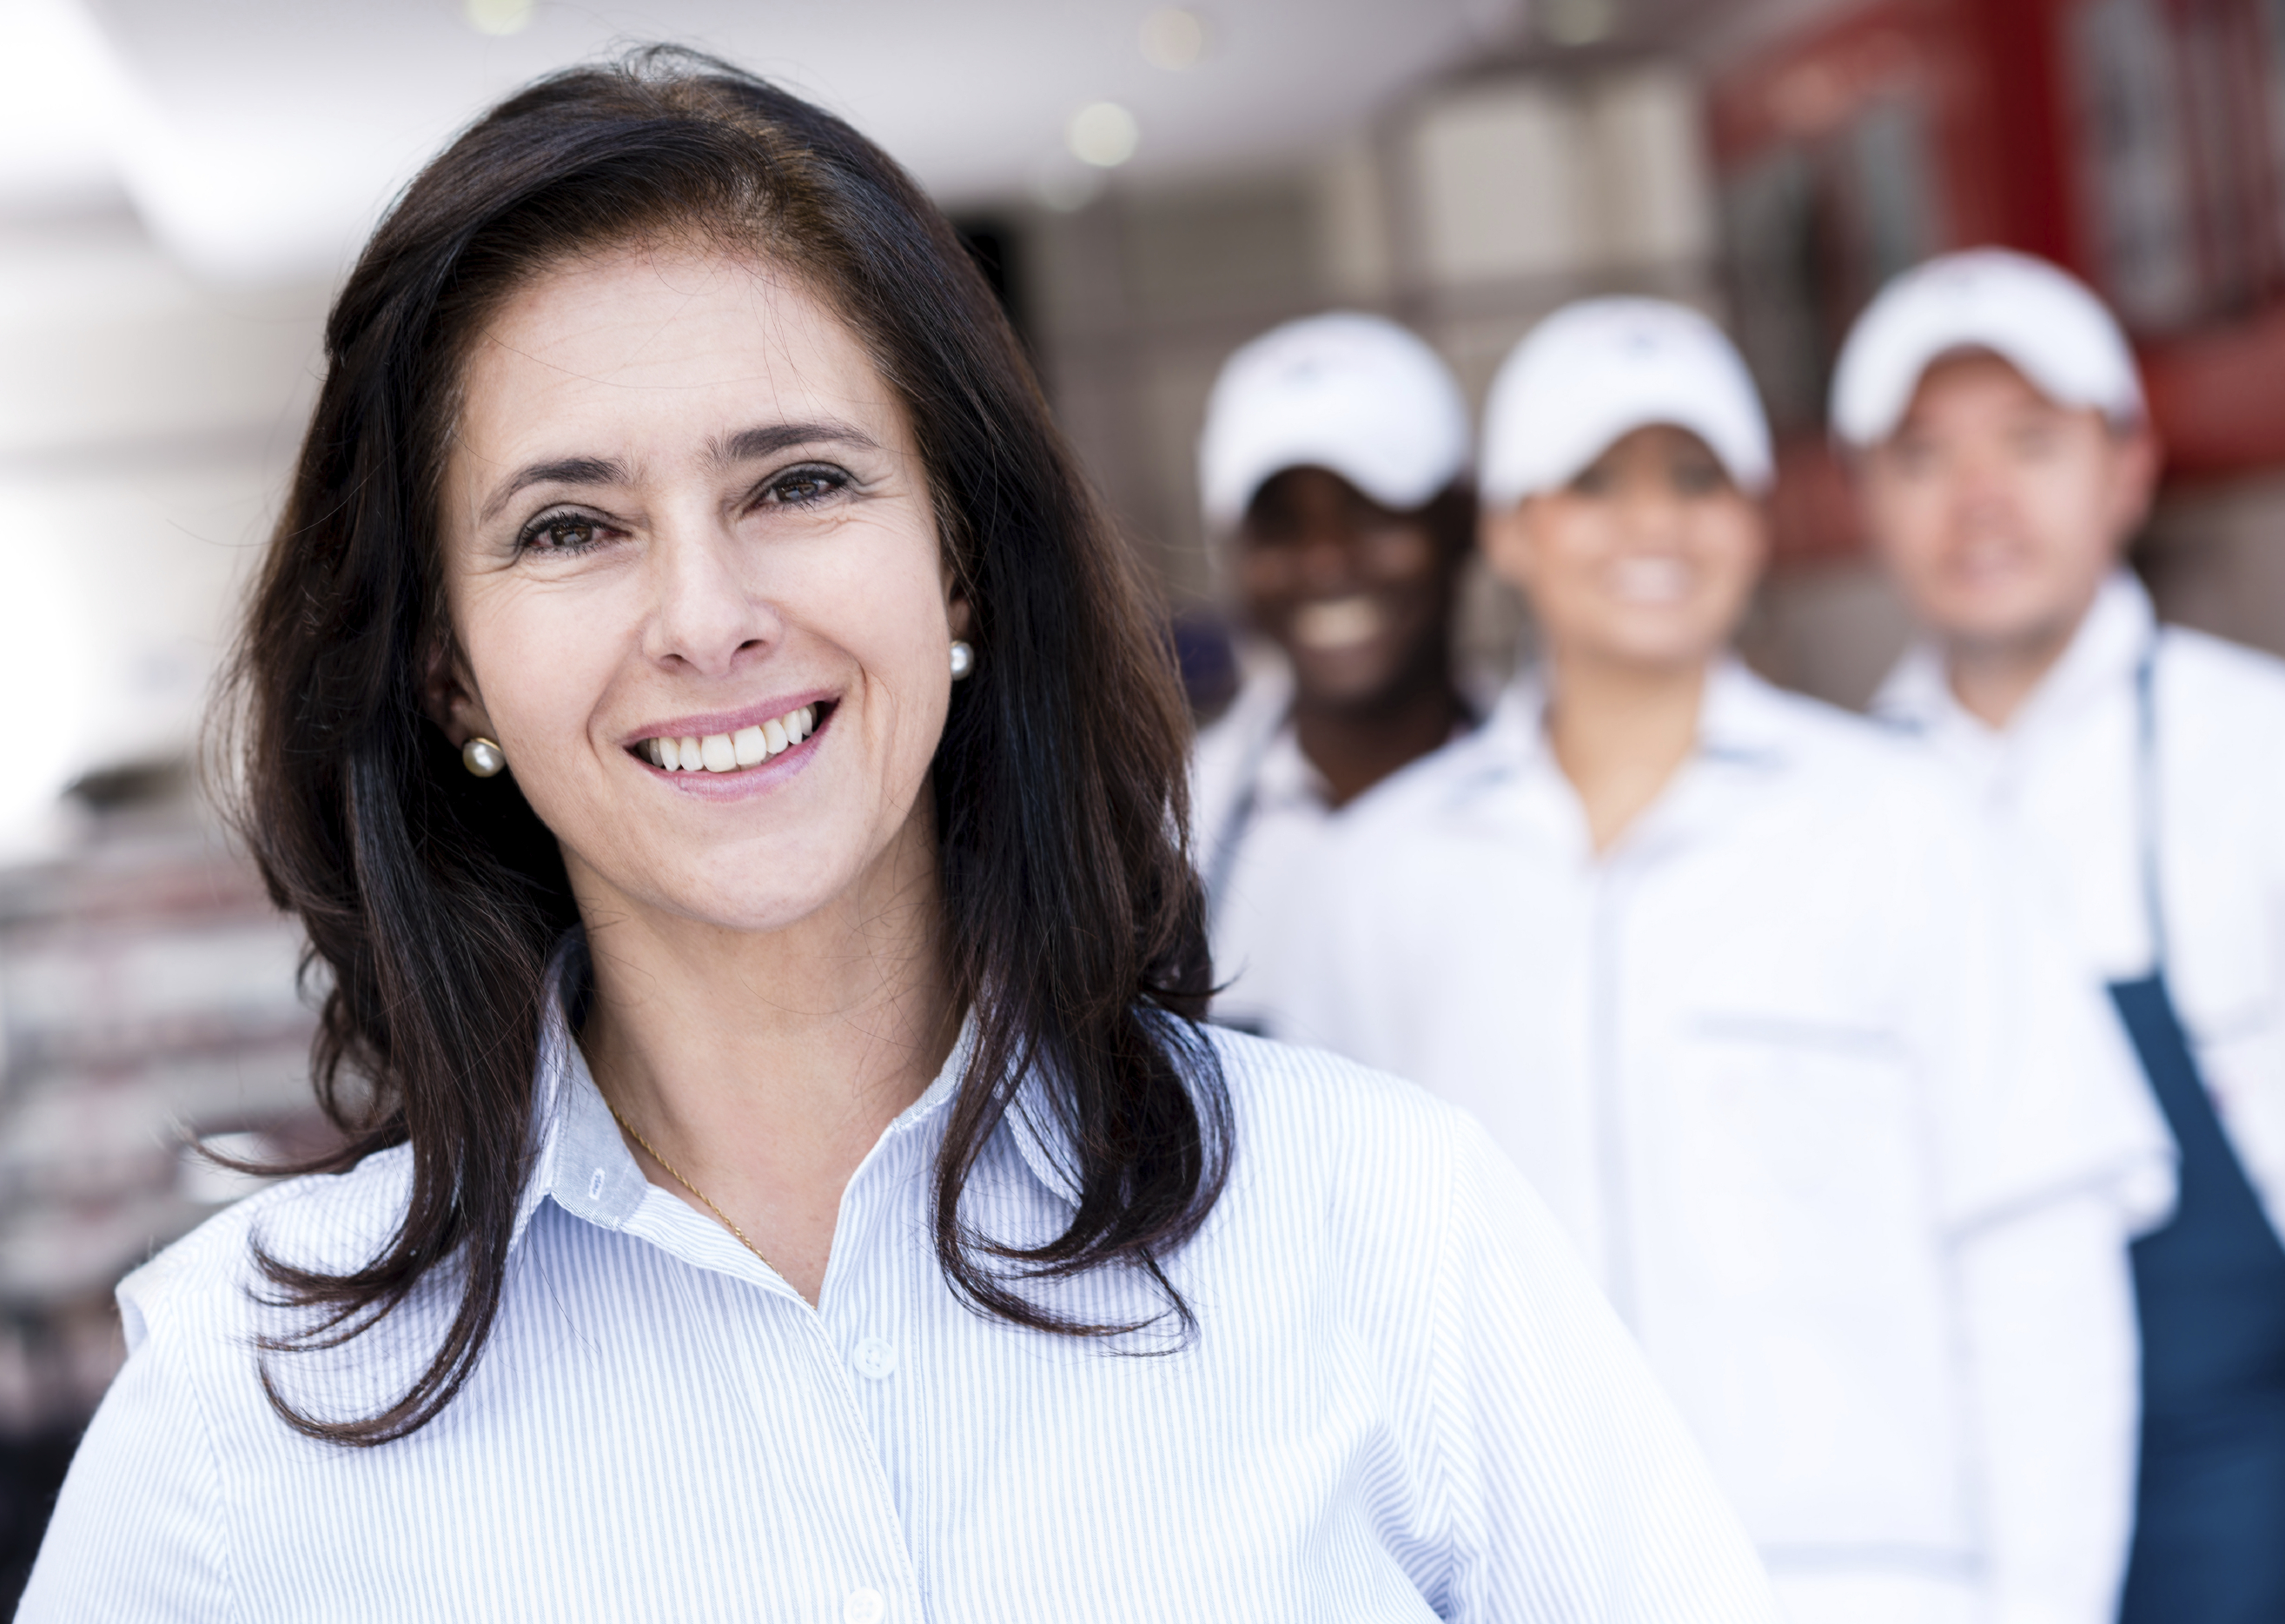 Portrait of a business owner smiling with her workers in the background